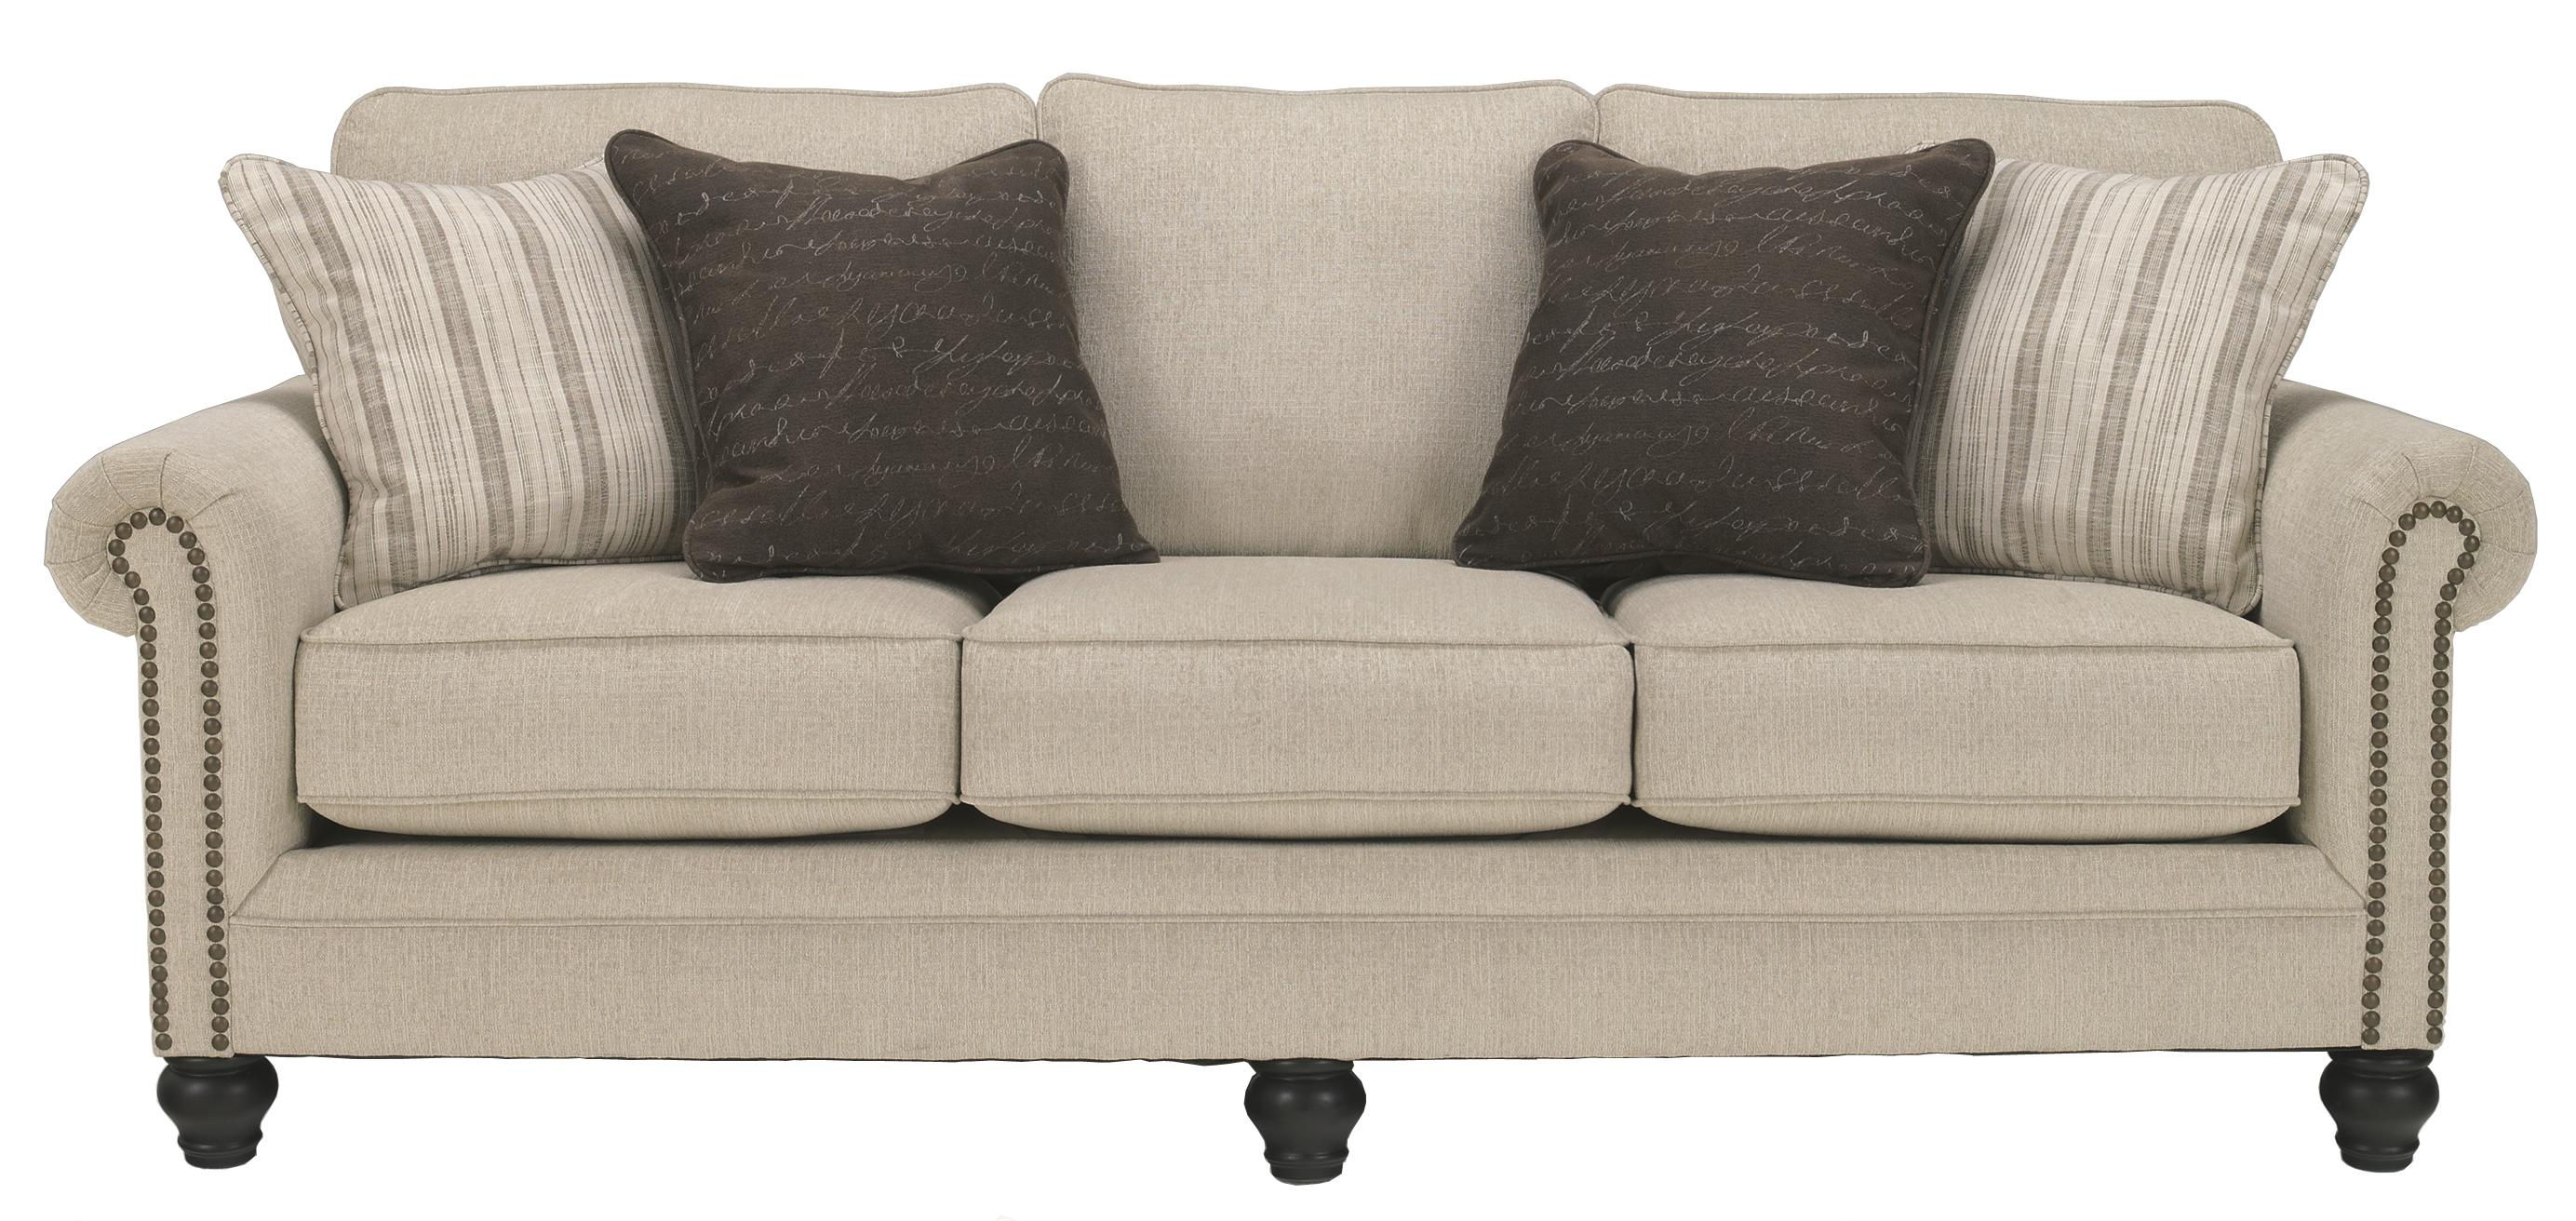 Signature Design by Ashley Milari - Linen Sofa - Item Number: 1300038